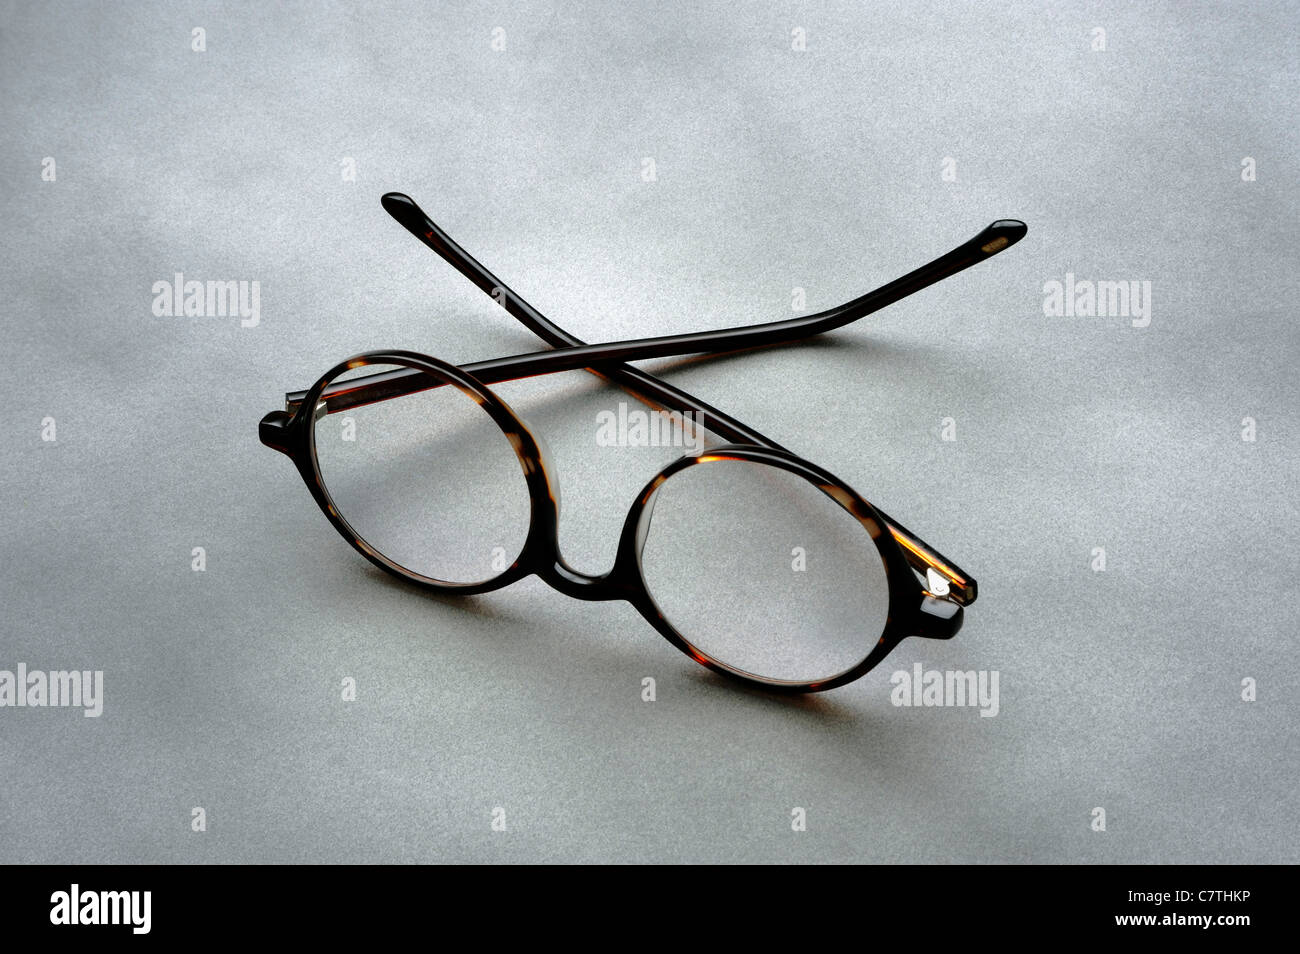 PAIR OF GLASSES OR READING GLASSES - Stock Image